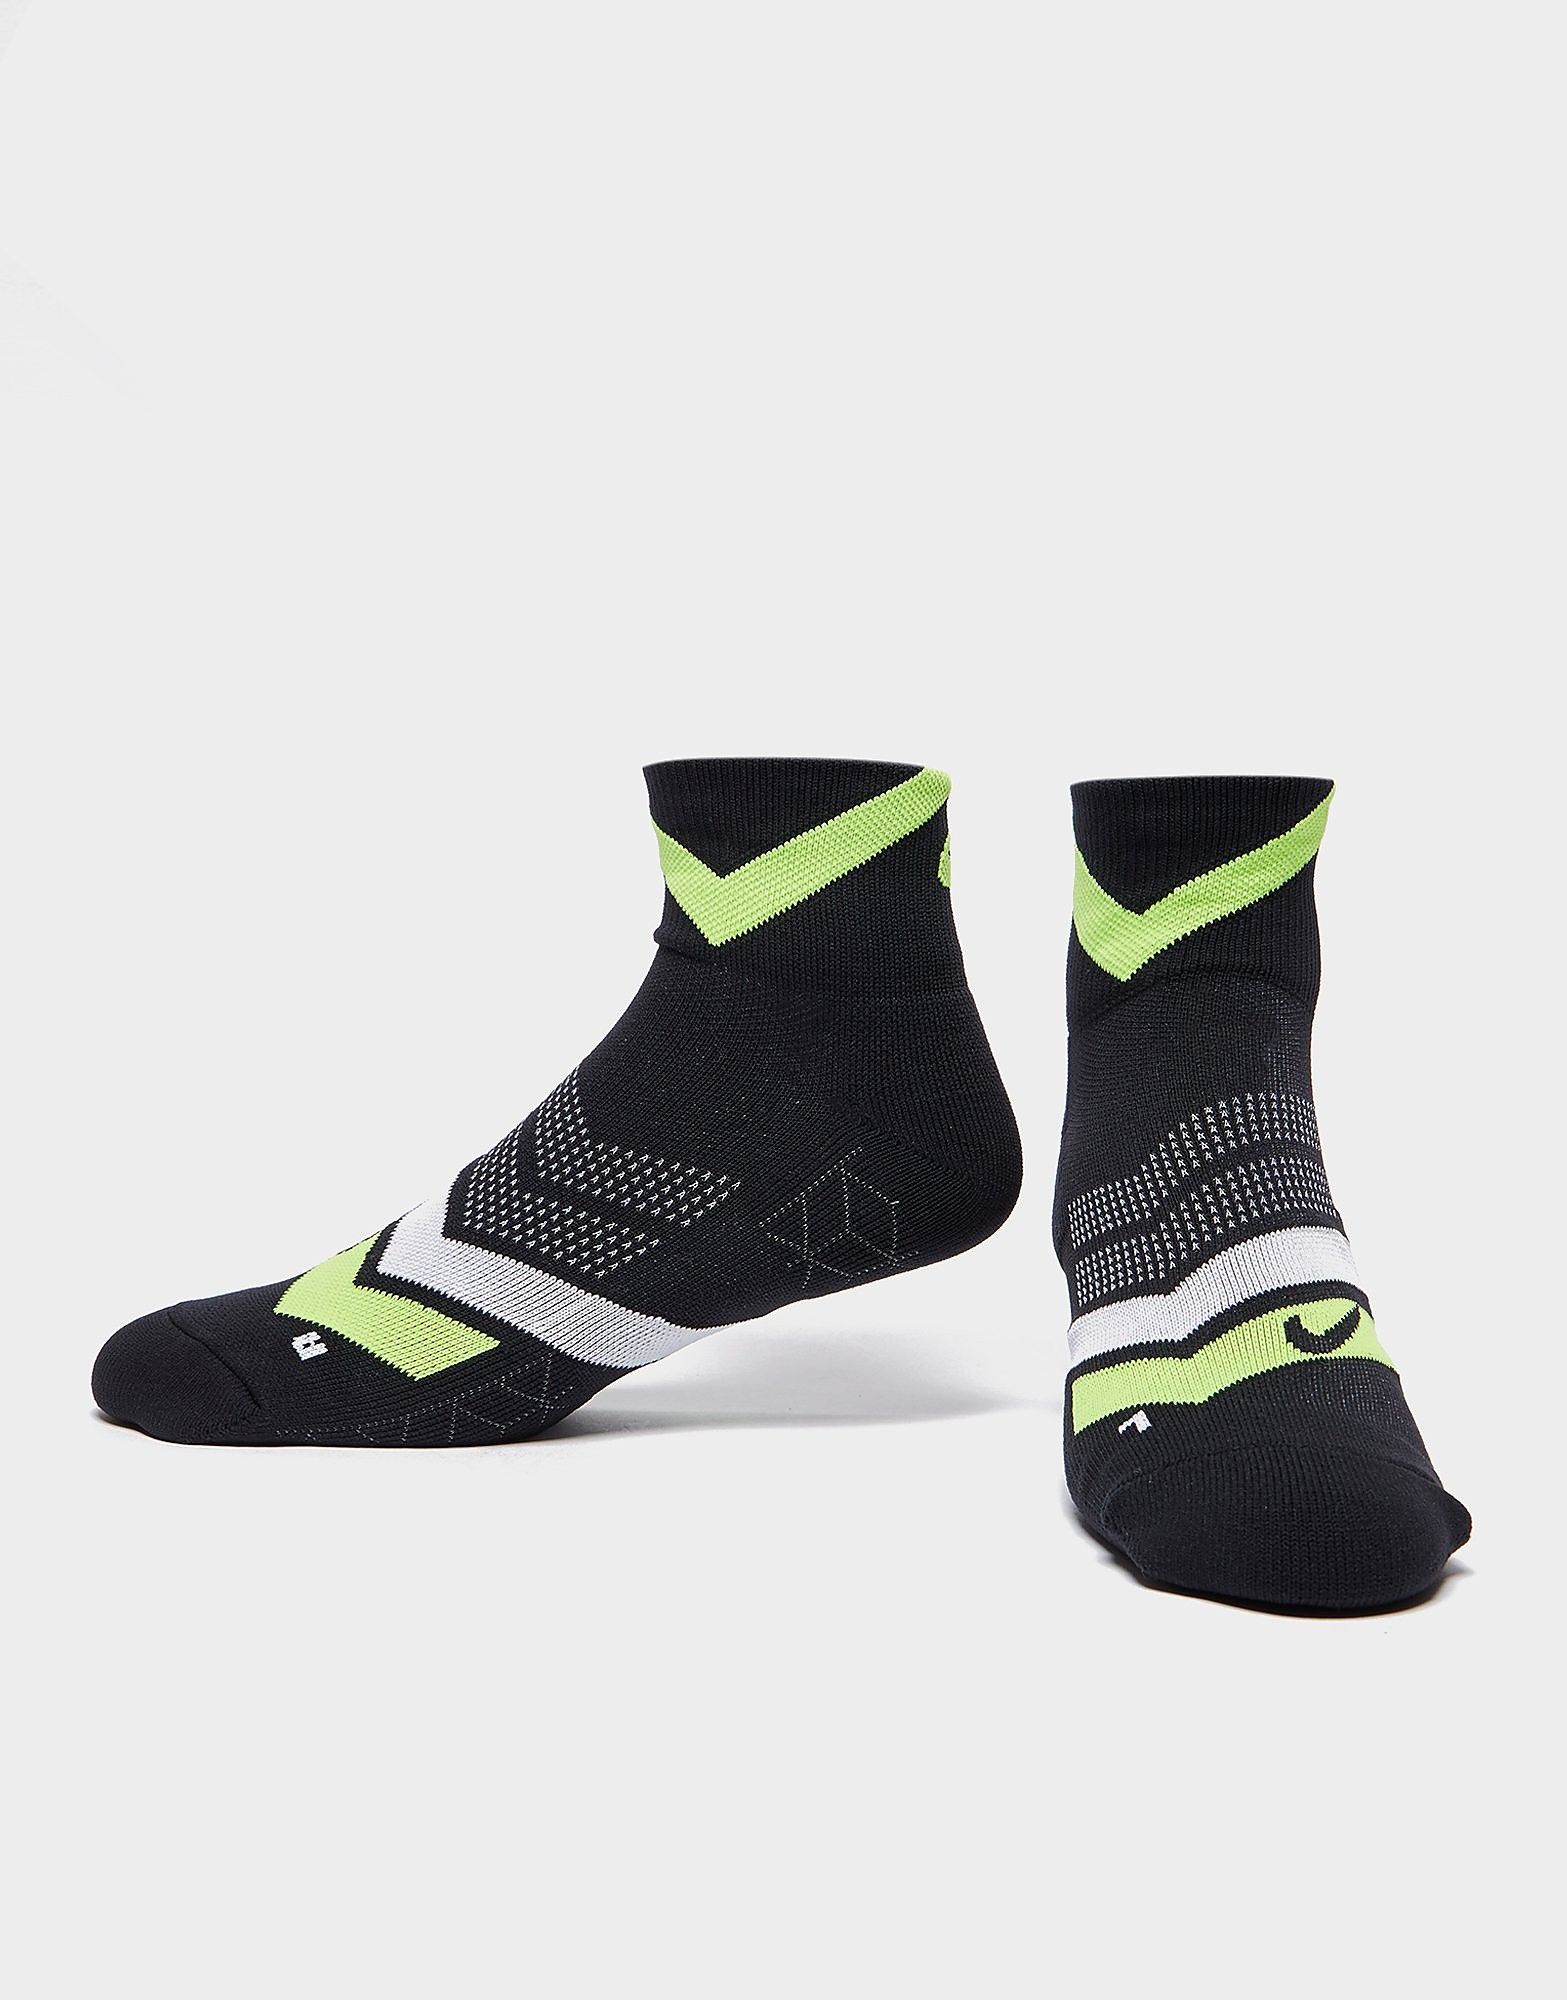 Nike calcetines Running Dri-FIT Cushioned